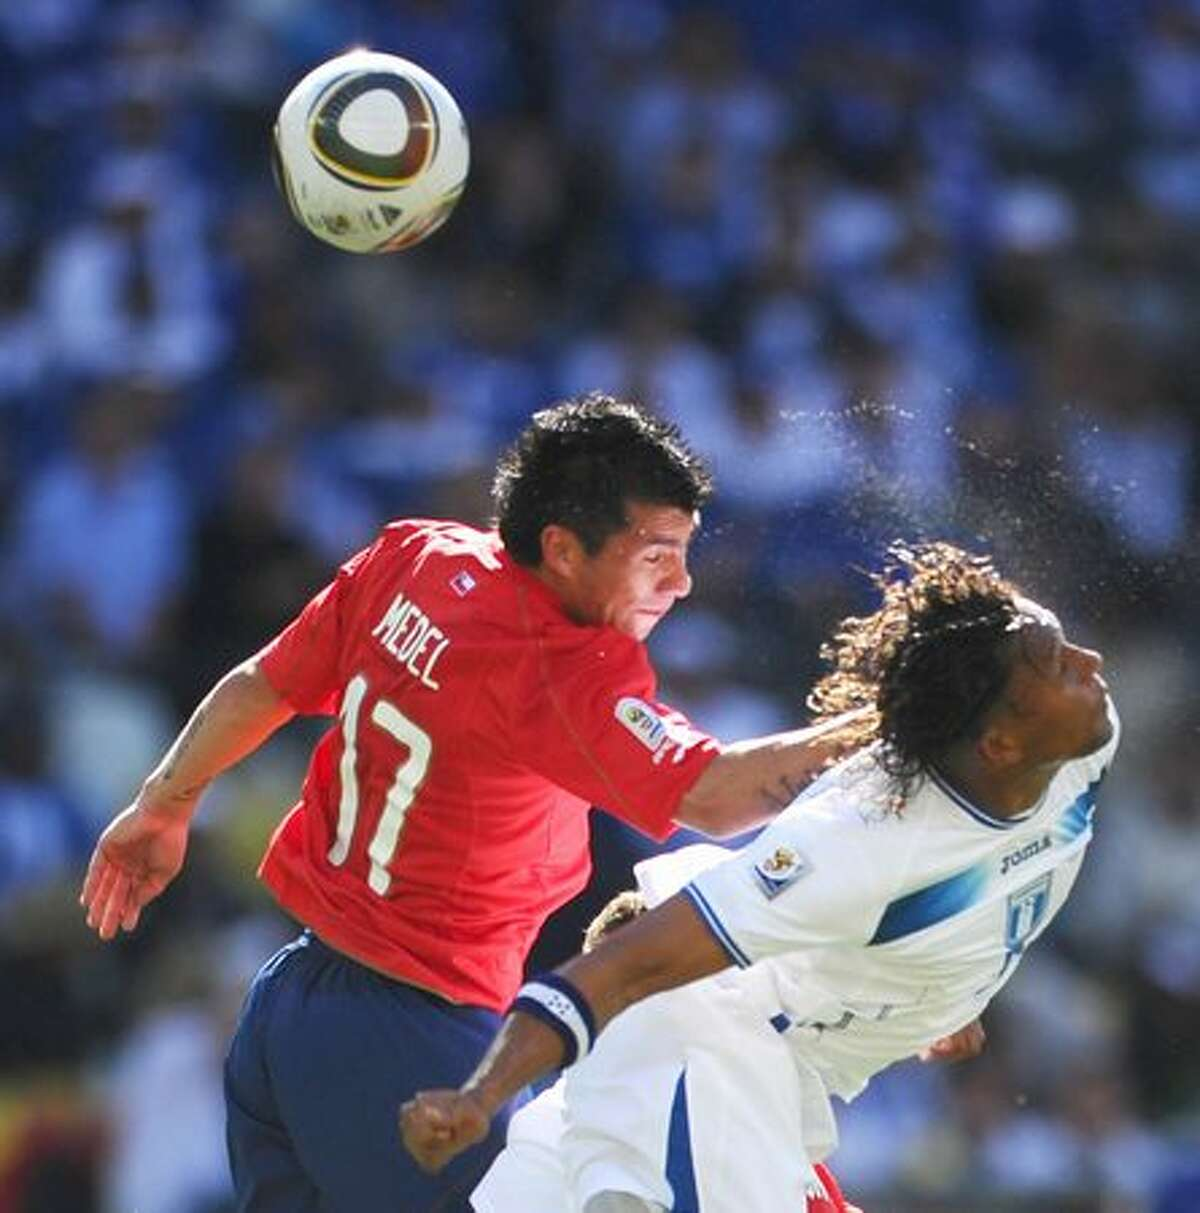 Chile's defender Gary Medel (L) leans on Honduras' striker Carlos Pavon as he heads the ball during the Group H first round 2010 World Cup football match Honduras vs. Chile on June 16, 2010 at Mbombela Stadium in Nelspruit.